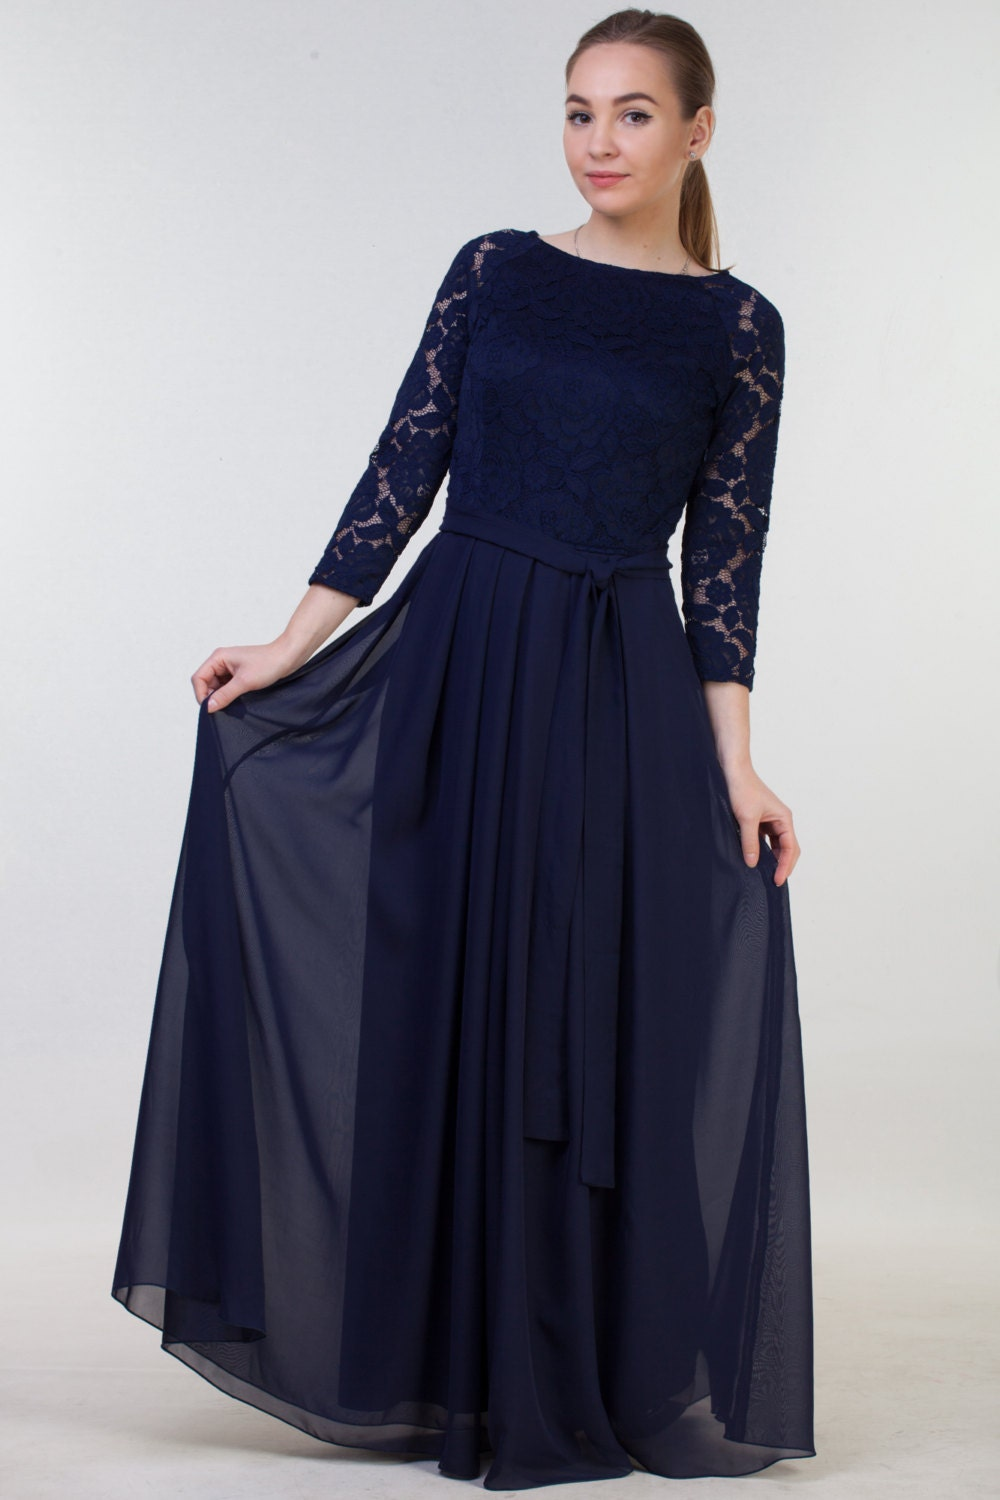 Long navy blue bridesmaid dress with sleeves navy blue lace description lace navy blue dress with chiffon ombrellifo Gallery